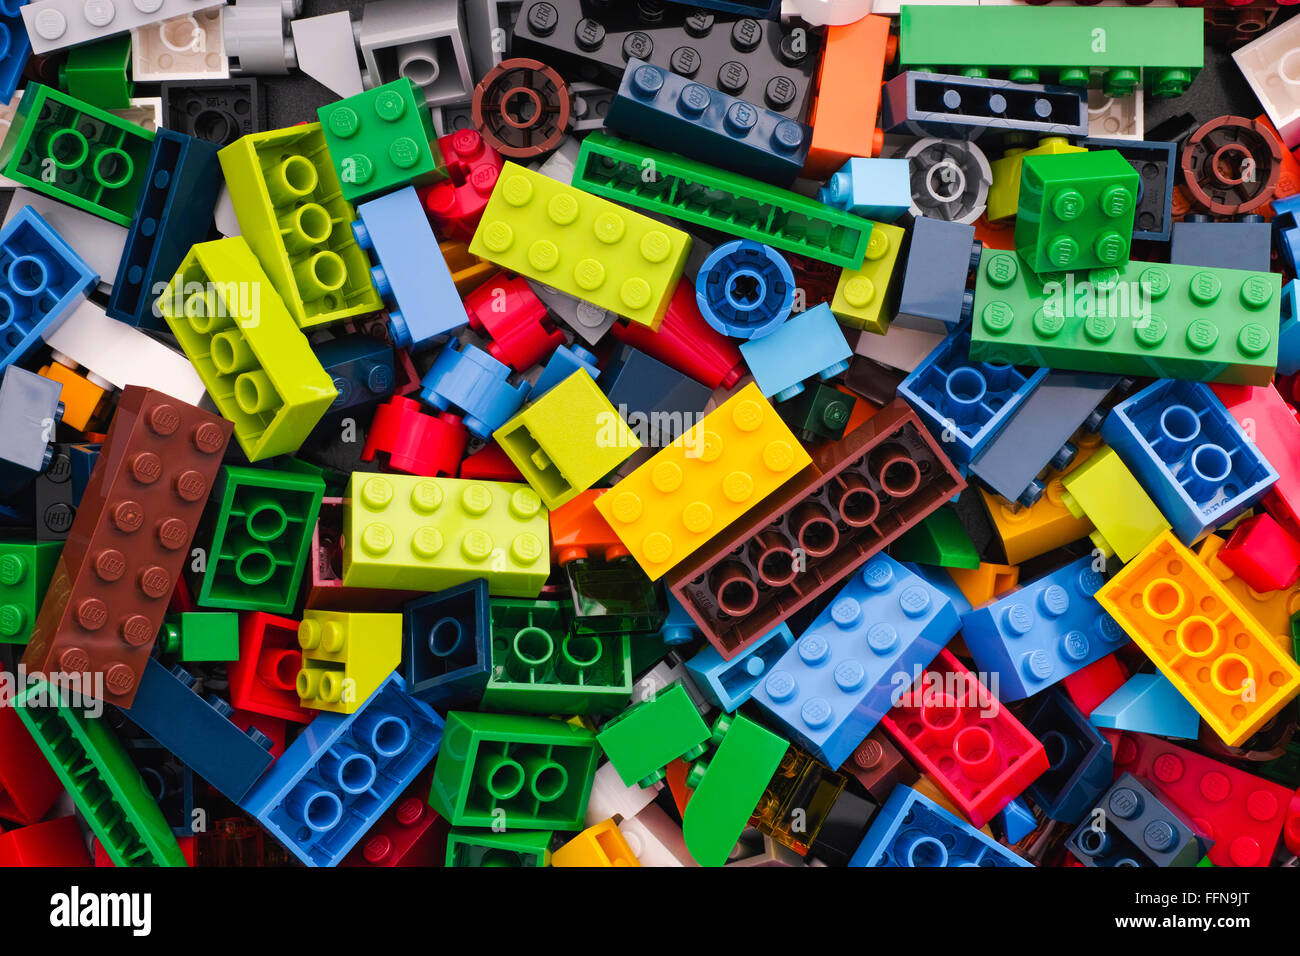 Tambov, Fédération de Russie - 24 mars 2015 tas de blocs Lego multicolores. Studio shot. Photo Stock